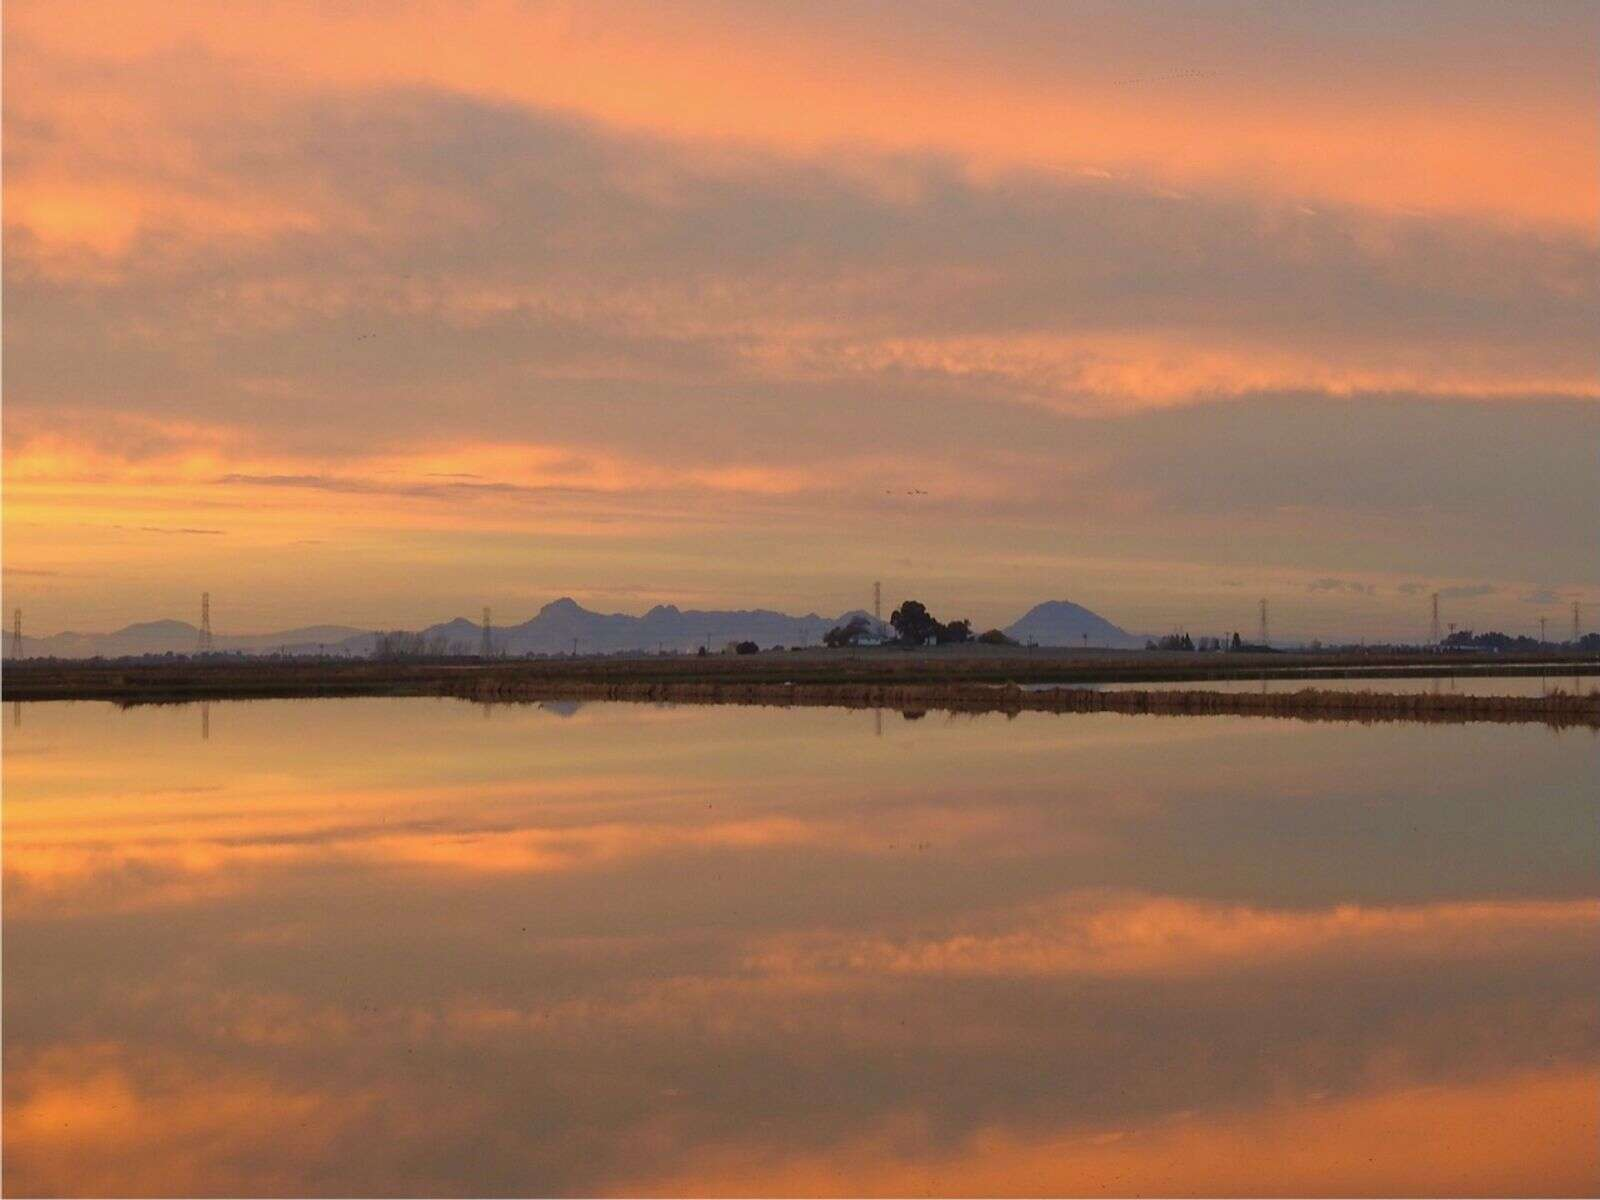 Sutter Buttes.   Submitted by Annita Kasparian